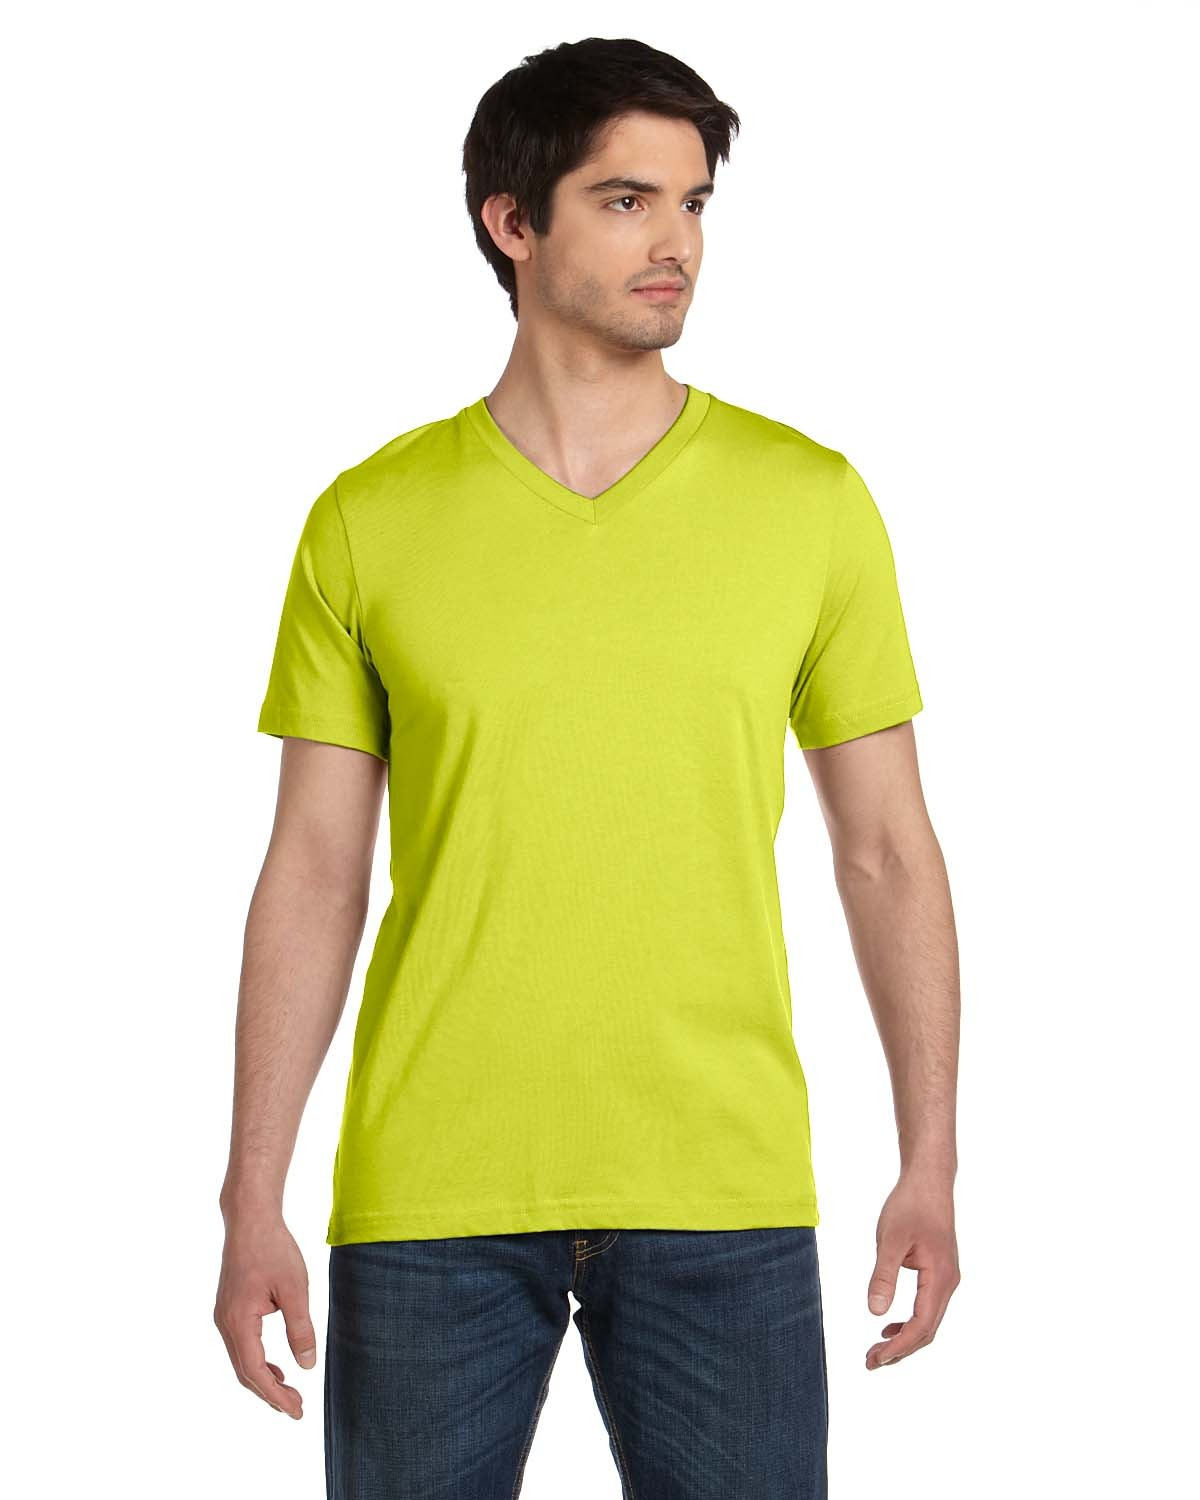 3005 Bella + Canvas NEON YELLOW